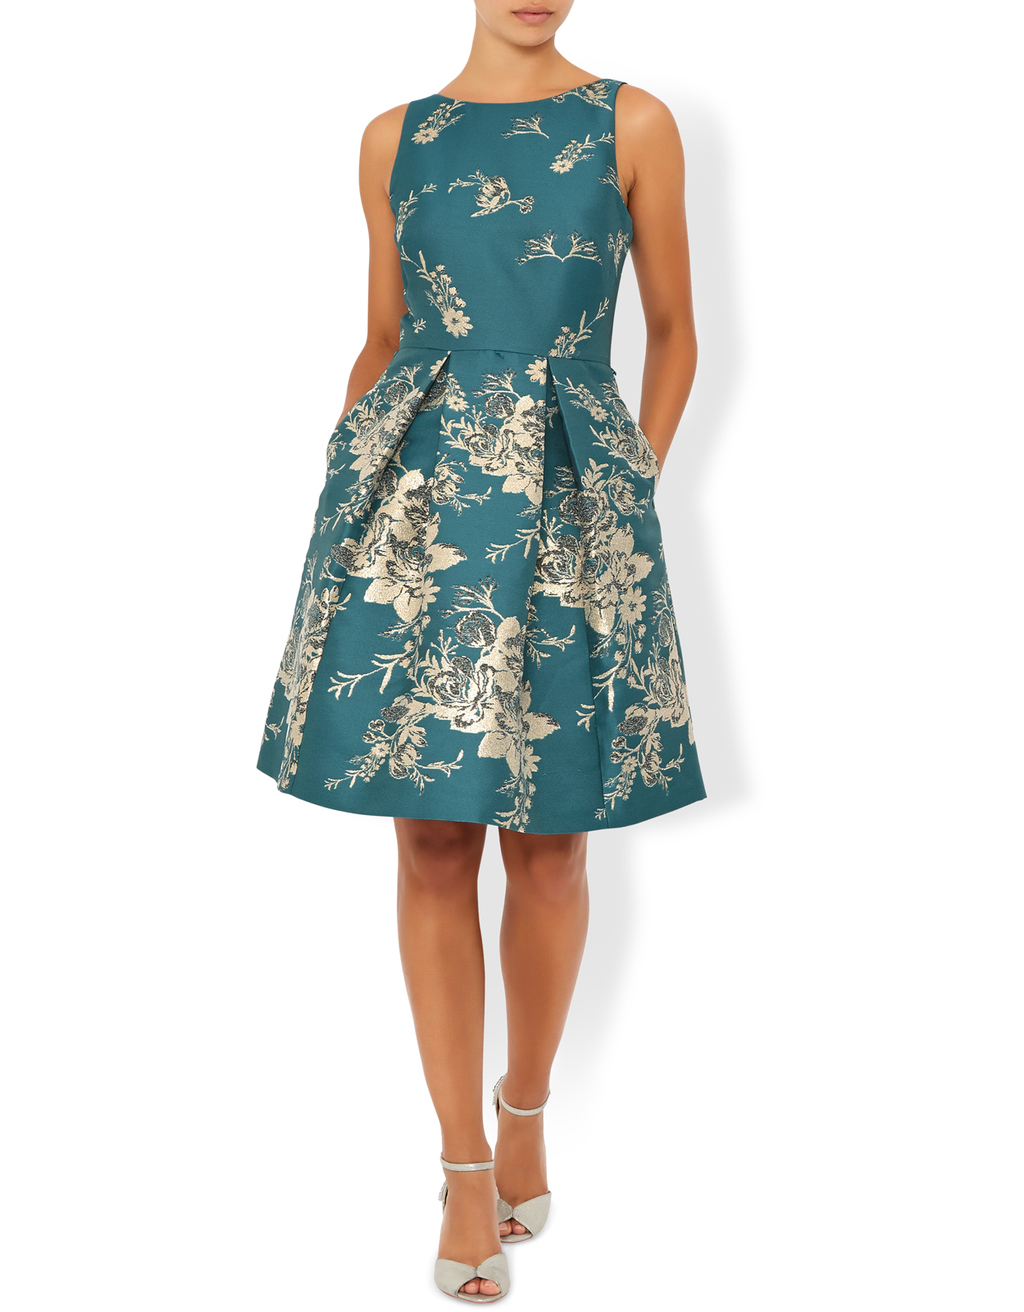 Sapphira Jacquard Dress - sleeve style: sleeveless; style: prom dress; waist detail: fitted waist; secondary colour: ivory/cream; predominant colour: teal; occasions: evening, occasion; length: just above the knee; fit: fitted at waist & bust; fibres: polyester/polyamide - 100%; neckline: crew; hip detail: structured pleats at hip; sleeve length: sleeveless; pattern type: fabric; pattern: florals; texture group: brocade/jacquard; season: s/s 2016